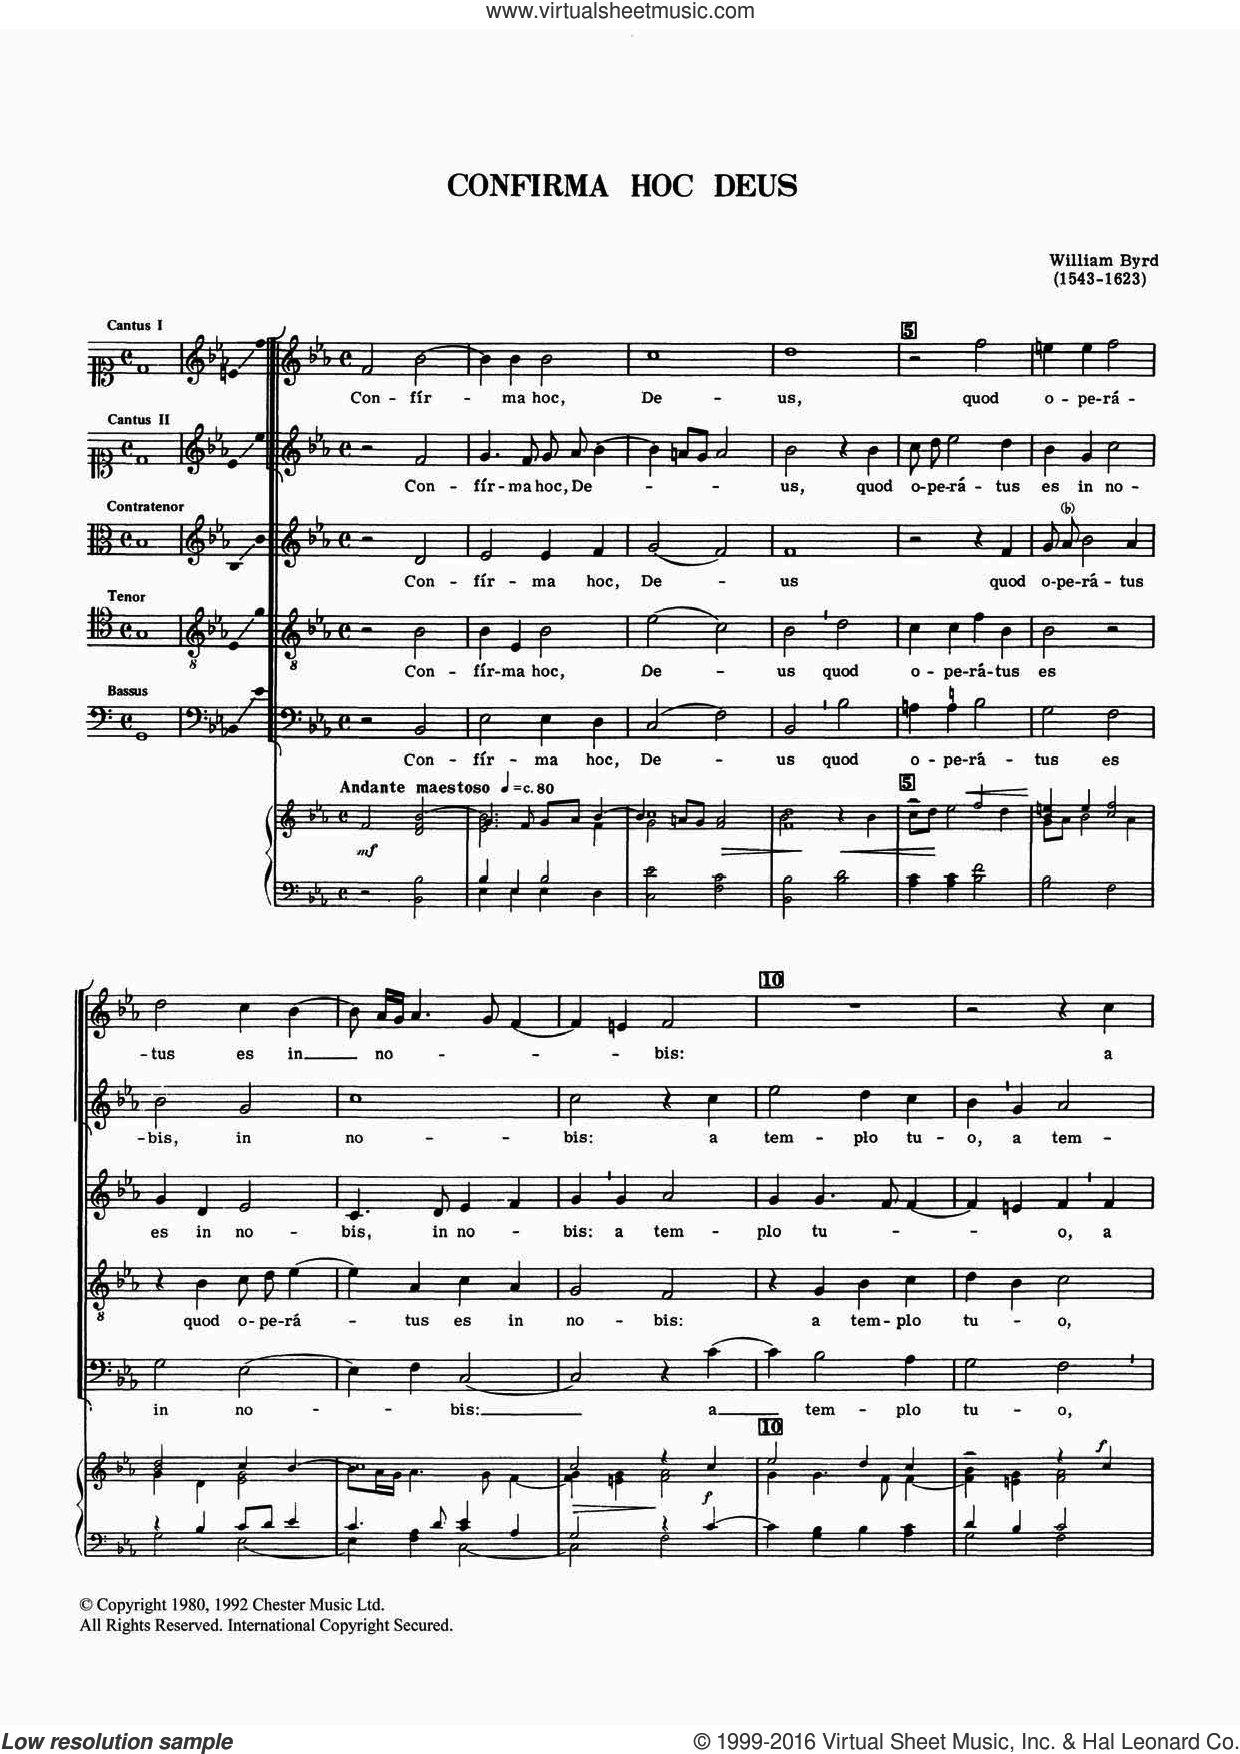 Confirma Hoc Deus sheet music for voice, piano or guitar by William Byrd. Score Image Preview.